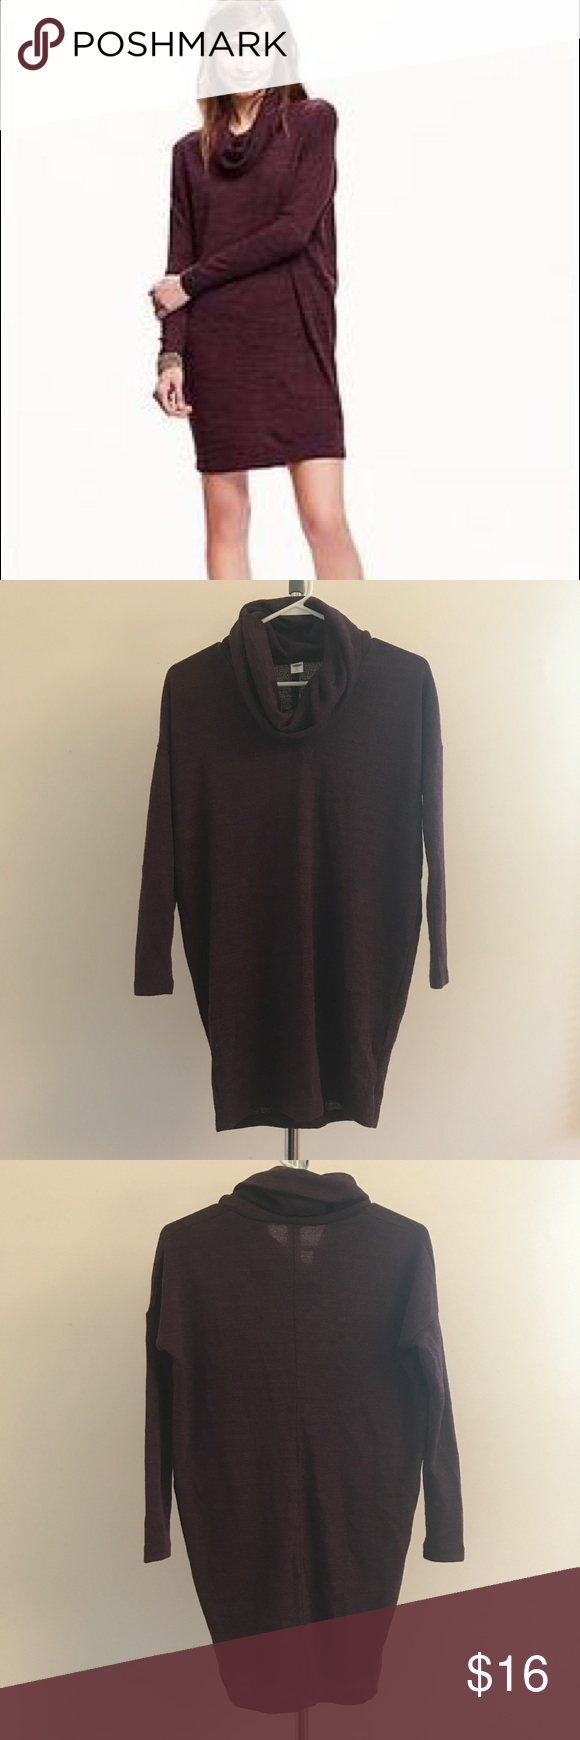 Old Navy Cowl Neck Sweater Dress | Cowl neck sweater dress, Cowl ...